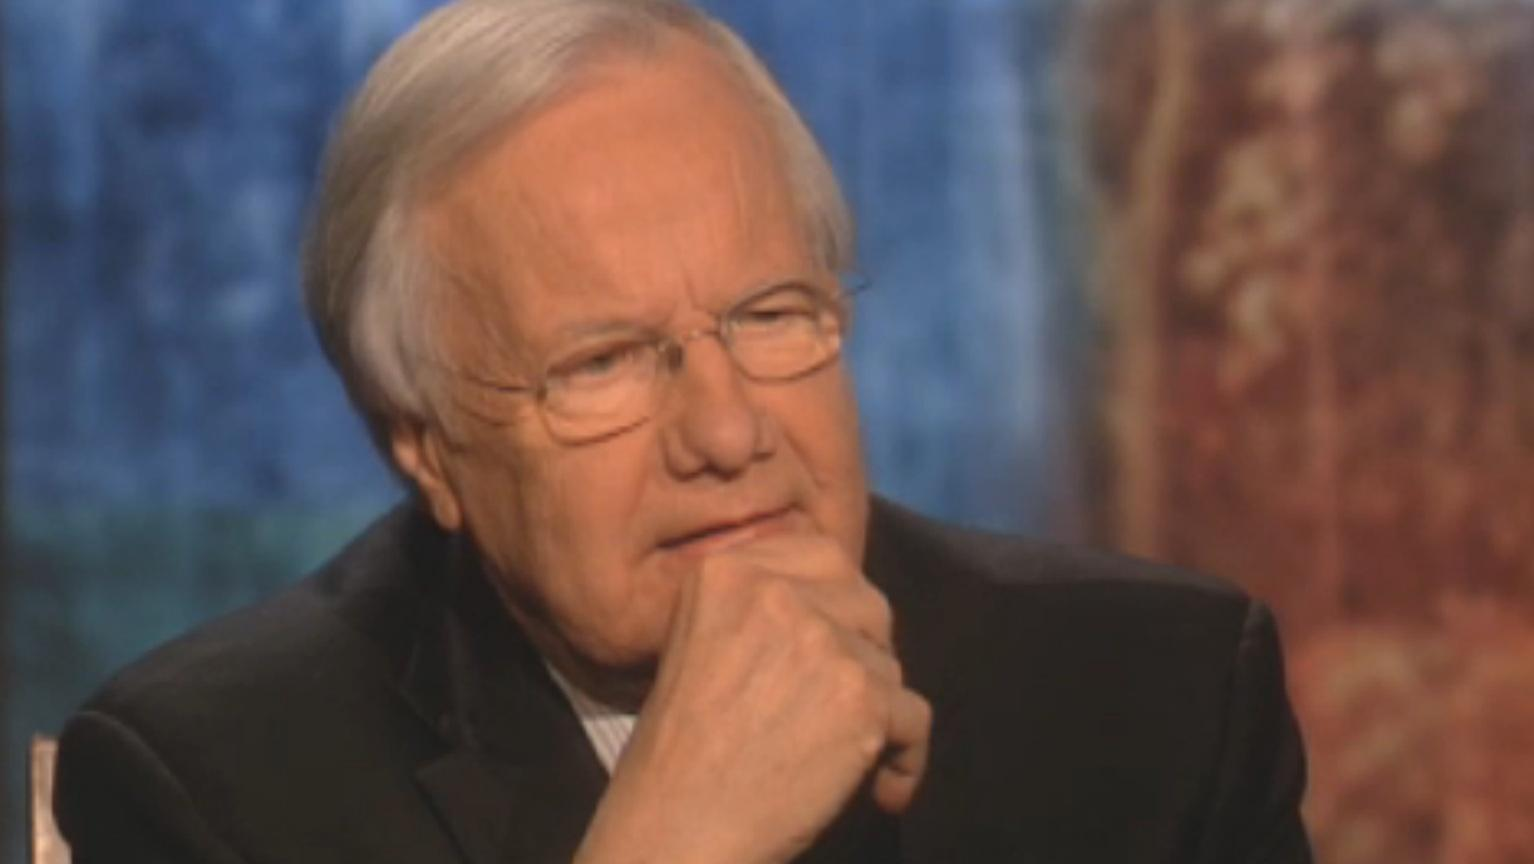 bill moyers essay living under the gun Correction: moyers unleashed on the nra and america in a video essay on the moyers & company website, but not on the july 20 pbs program with the first heart-breaking headlines out of colorado, gun-rights advocates just had to know that leftist lecturers in our media would mount their soap boxes and trash this country for its gun culture and trash the national rifle.